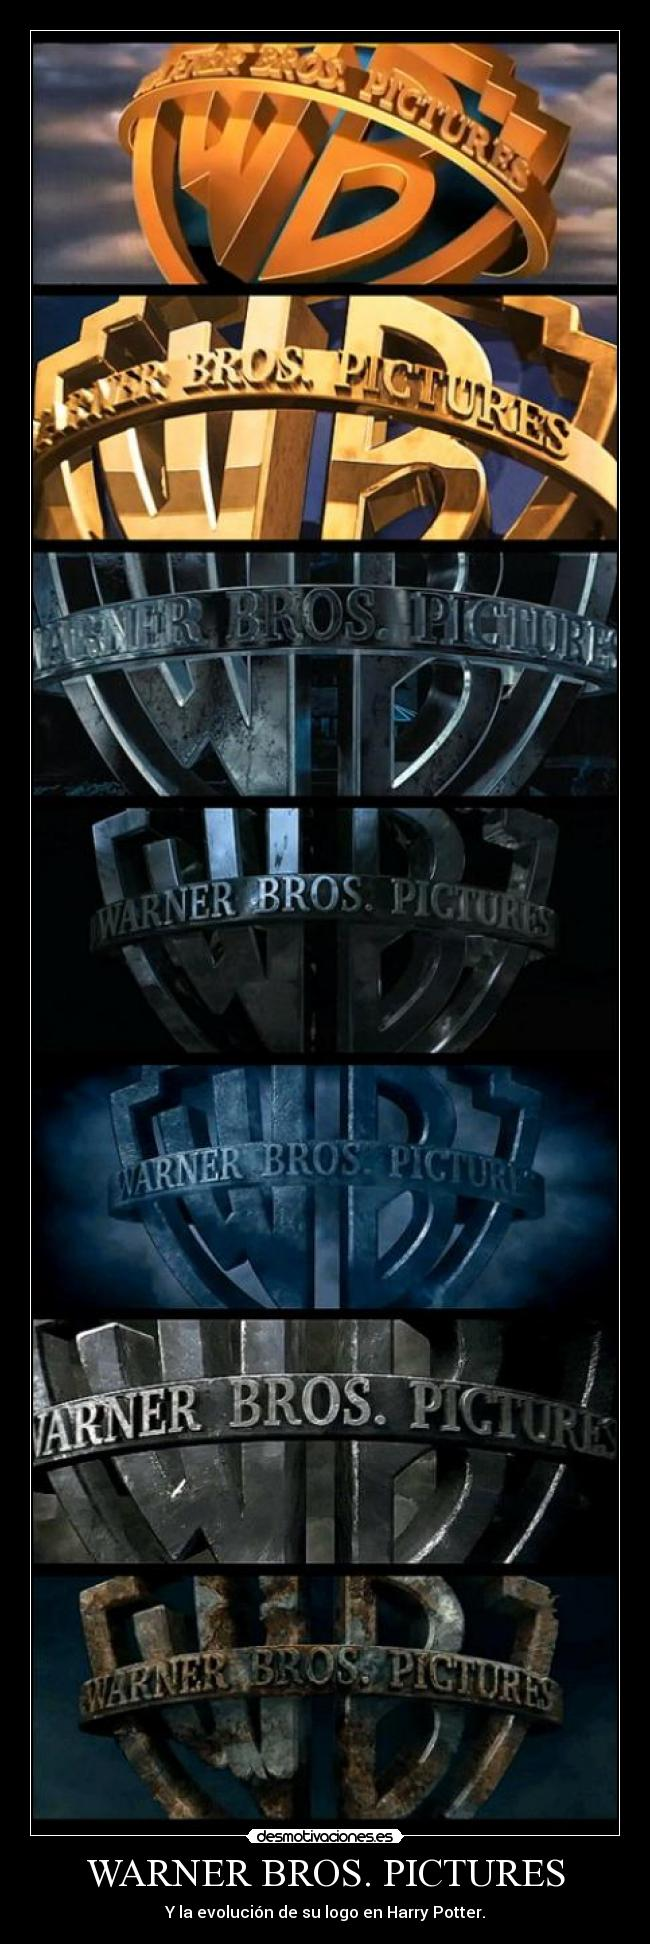 WARNER BROS. PICTURES - Y la evolución de su logo en Harry Potter.